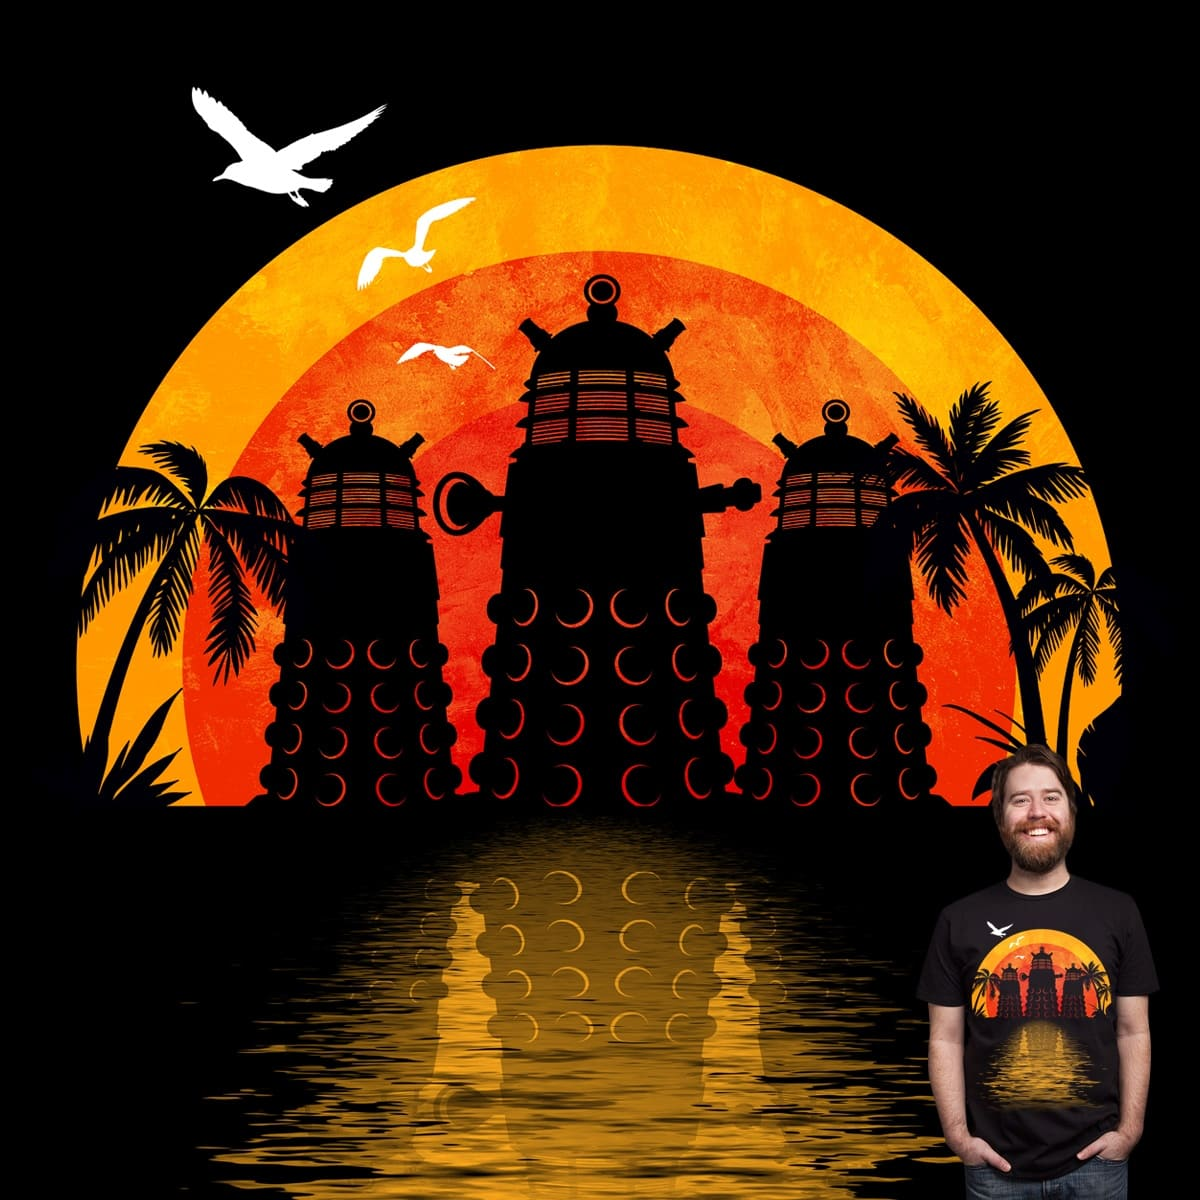 The Rise of Skaro by goliath72 and Joe Conde on Threadless